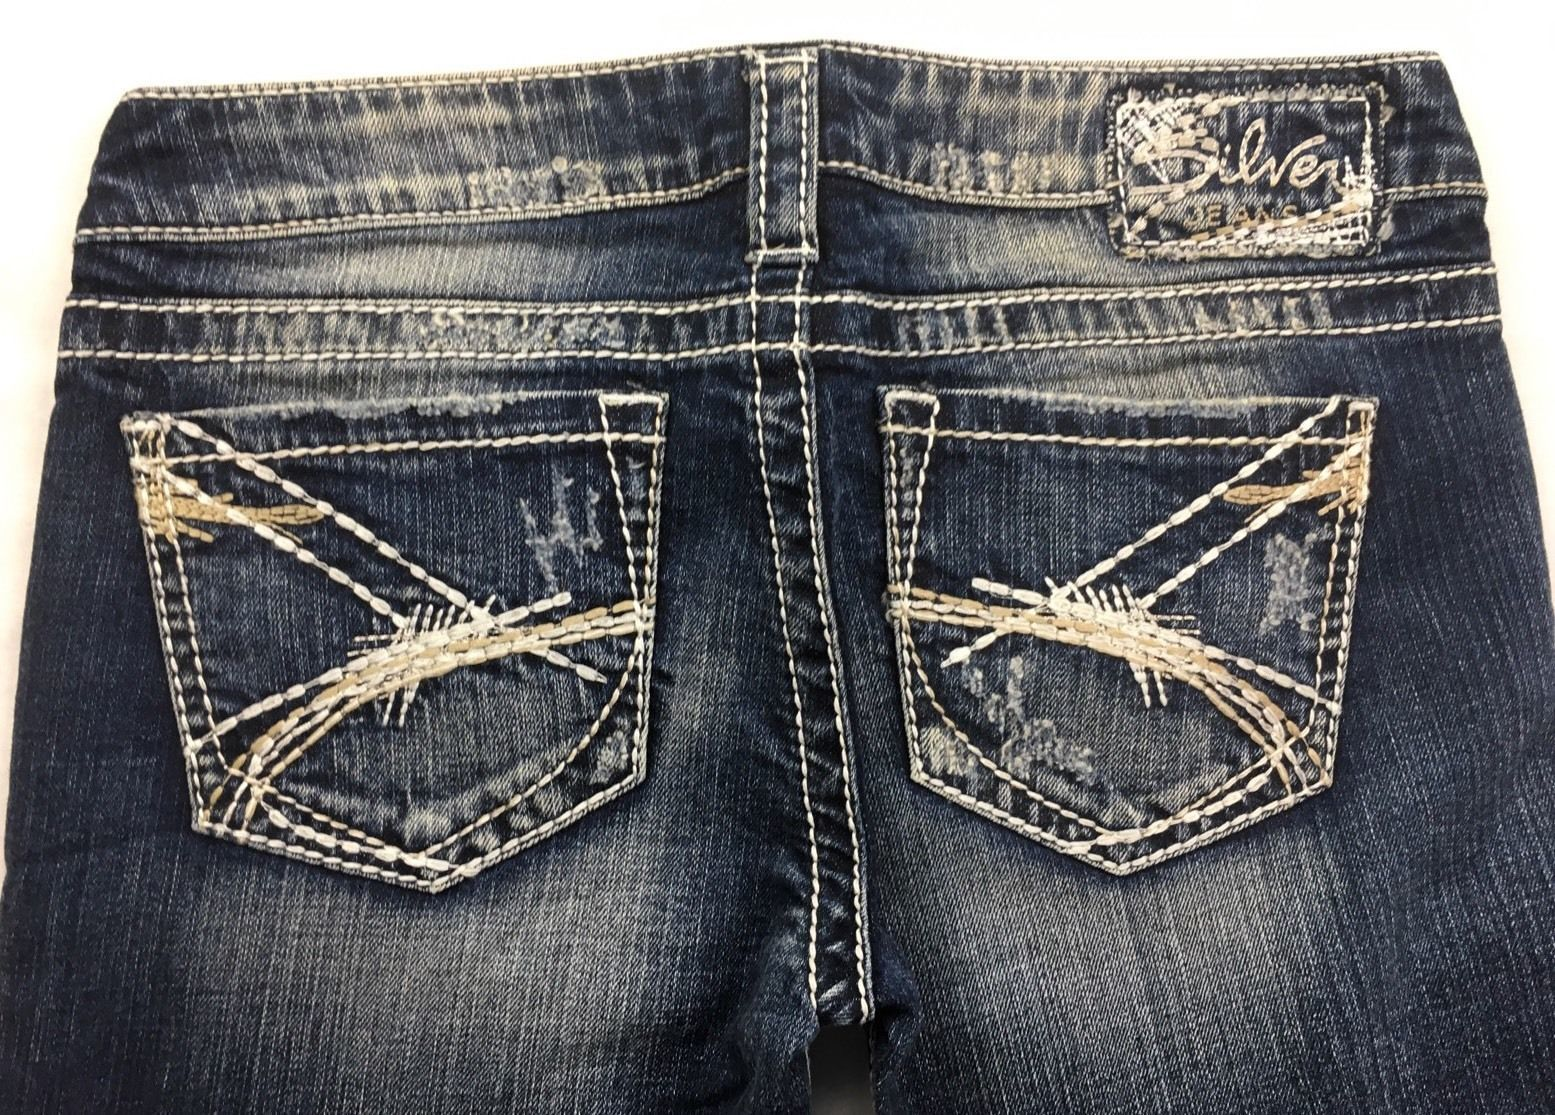 New SILVER Jeans Buckle Distressed Tuesday Denim Stretch Jean Mid Shorts 28 & 32